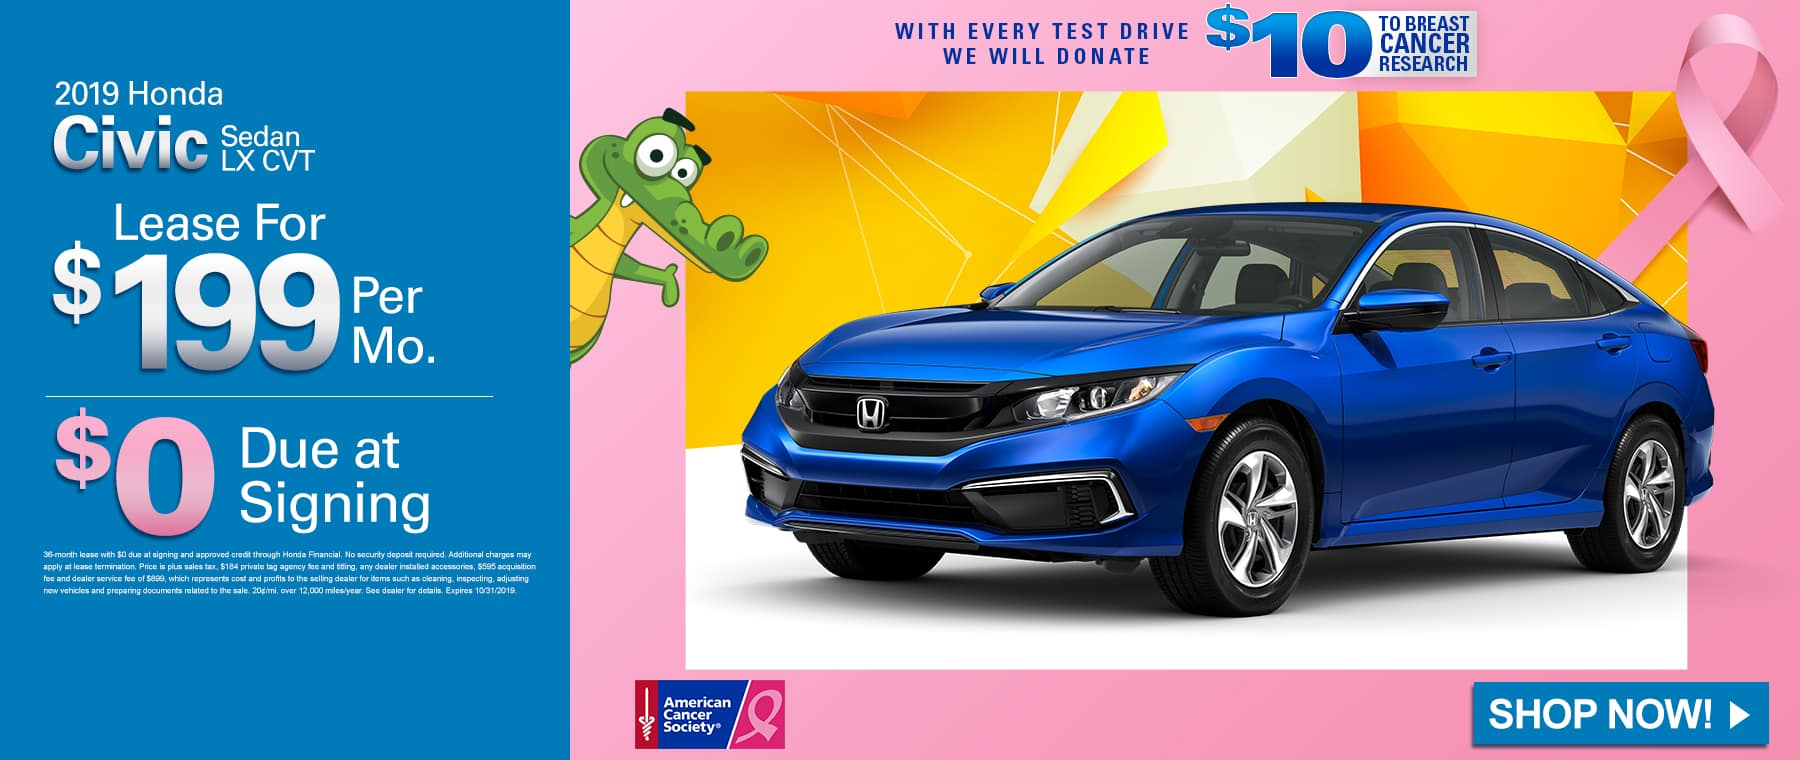 2019 Honda Civic Sedan LX CVT | Lease For $199 A Month $0 Due At Signing | With Every Test Drive We Will Donate $10 To Breast Cancer Research